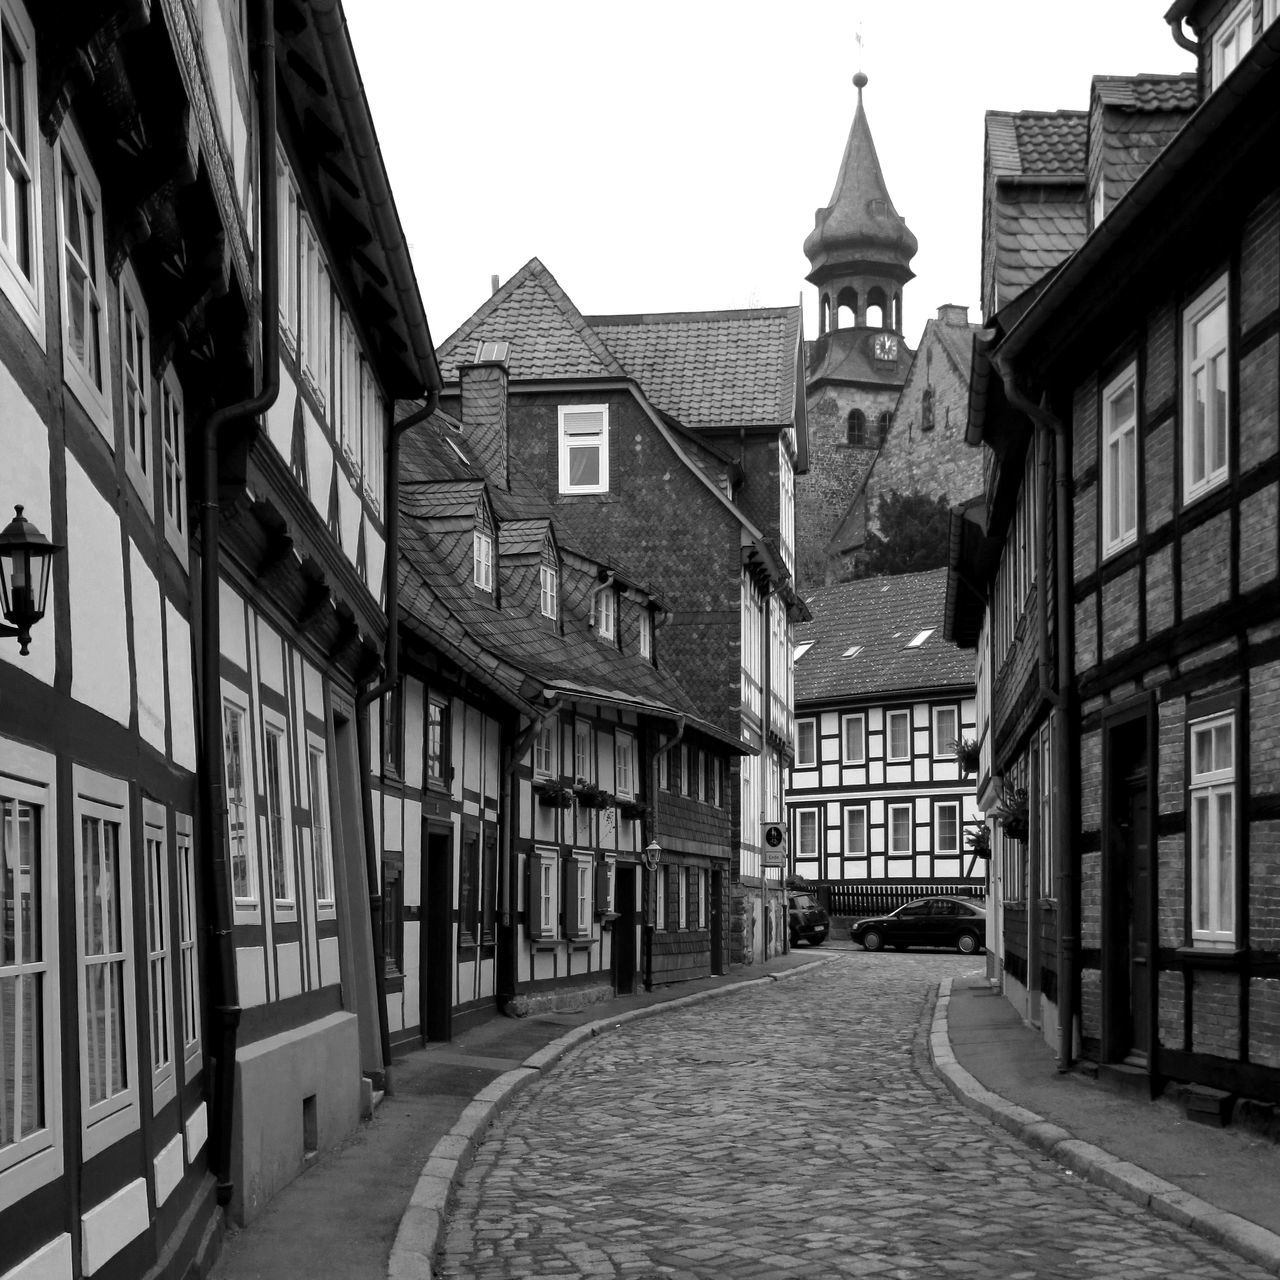 Architecture Black And White Building Exterior Germany Goslar Historical Buildings Medieval Narrow Street Town